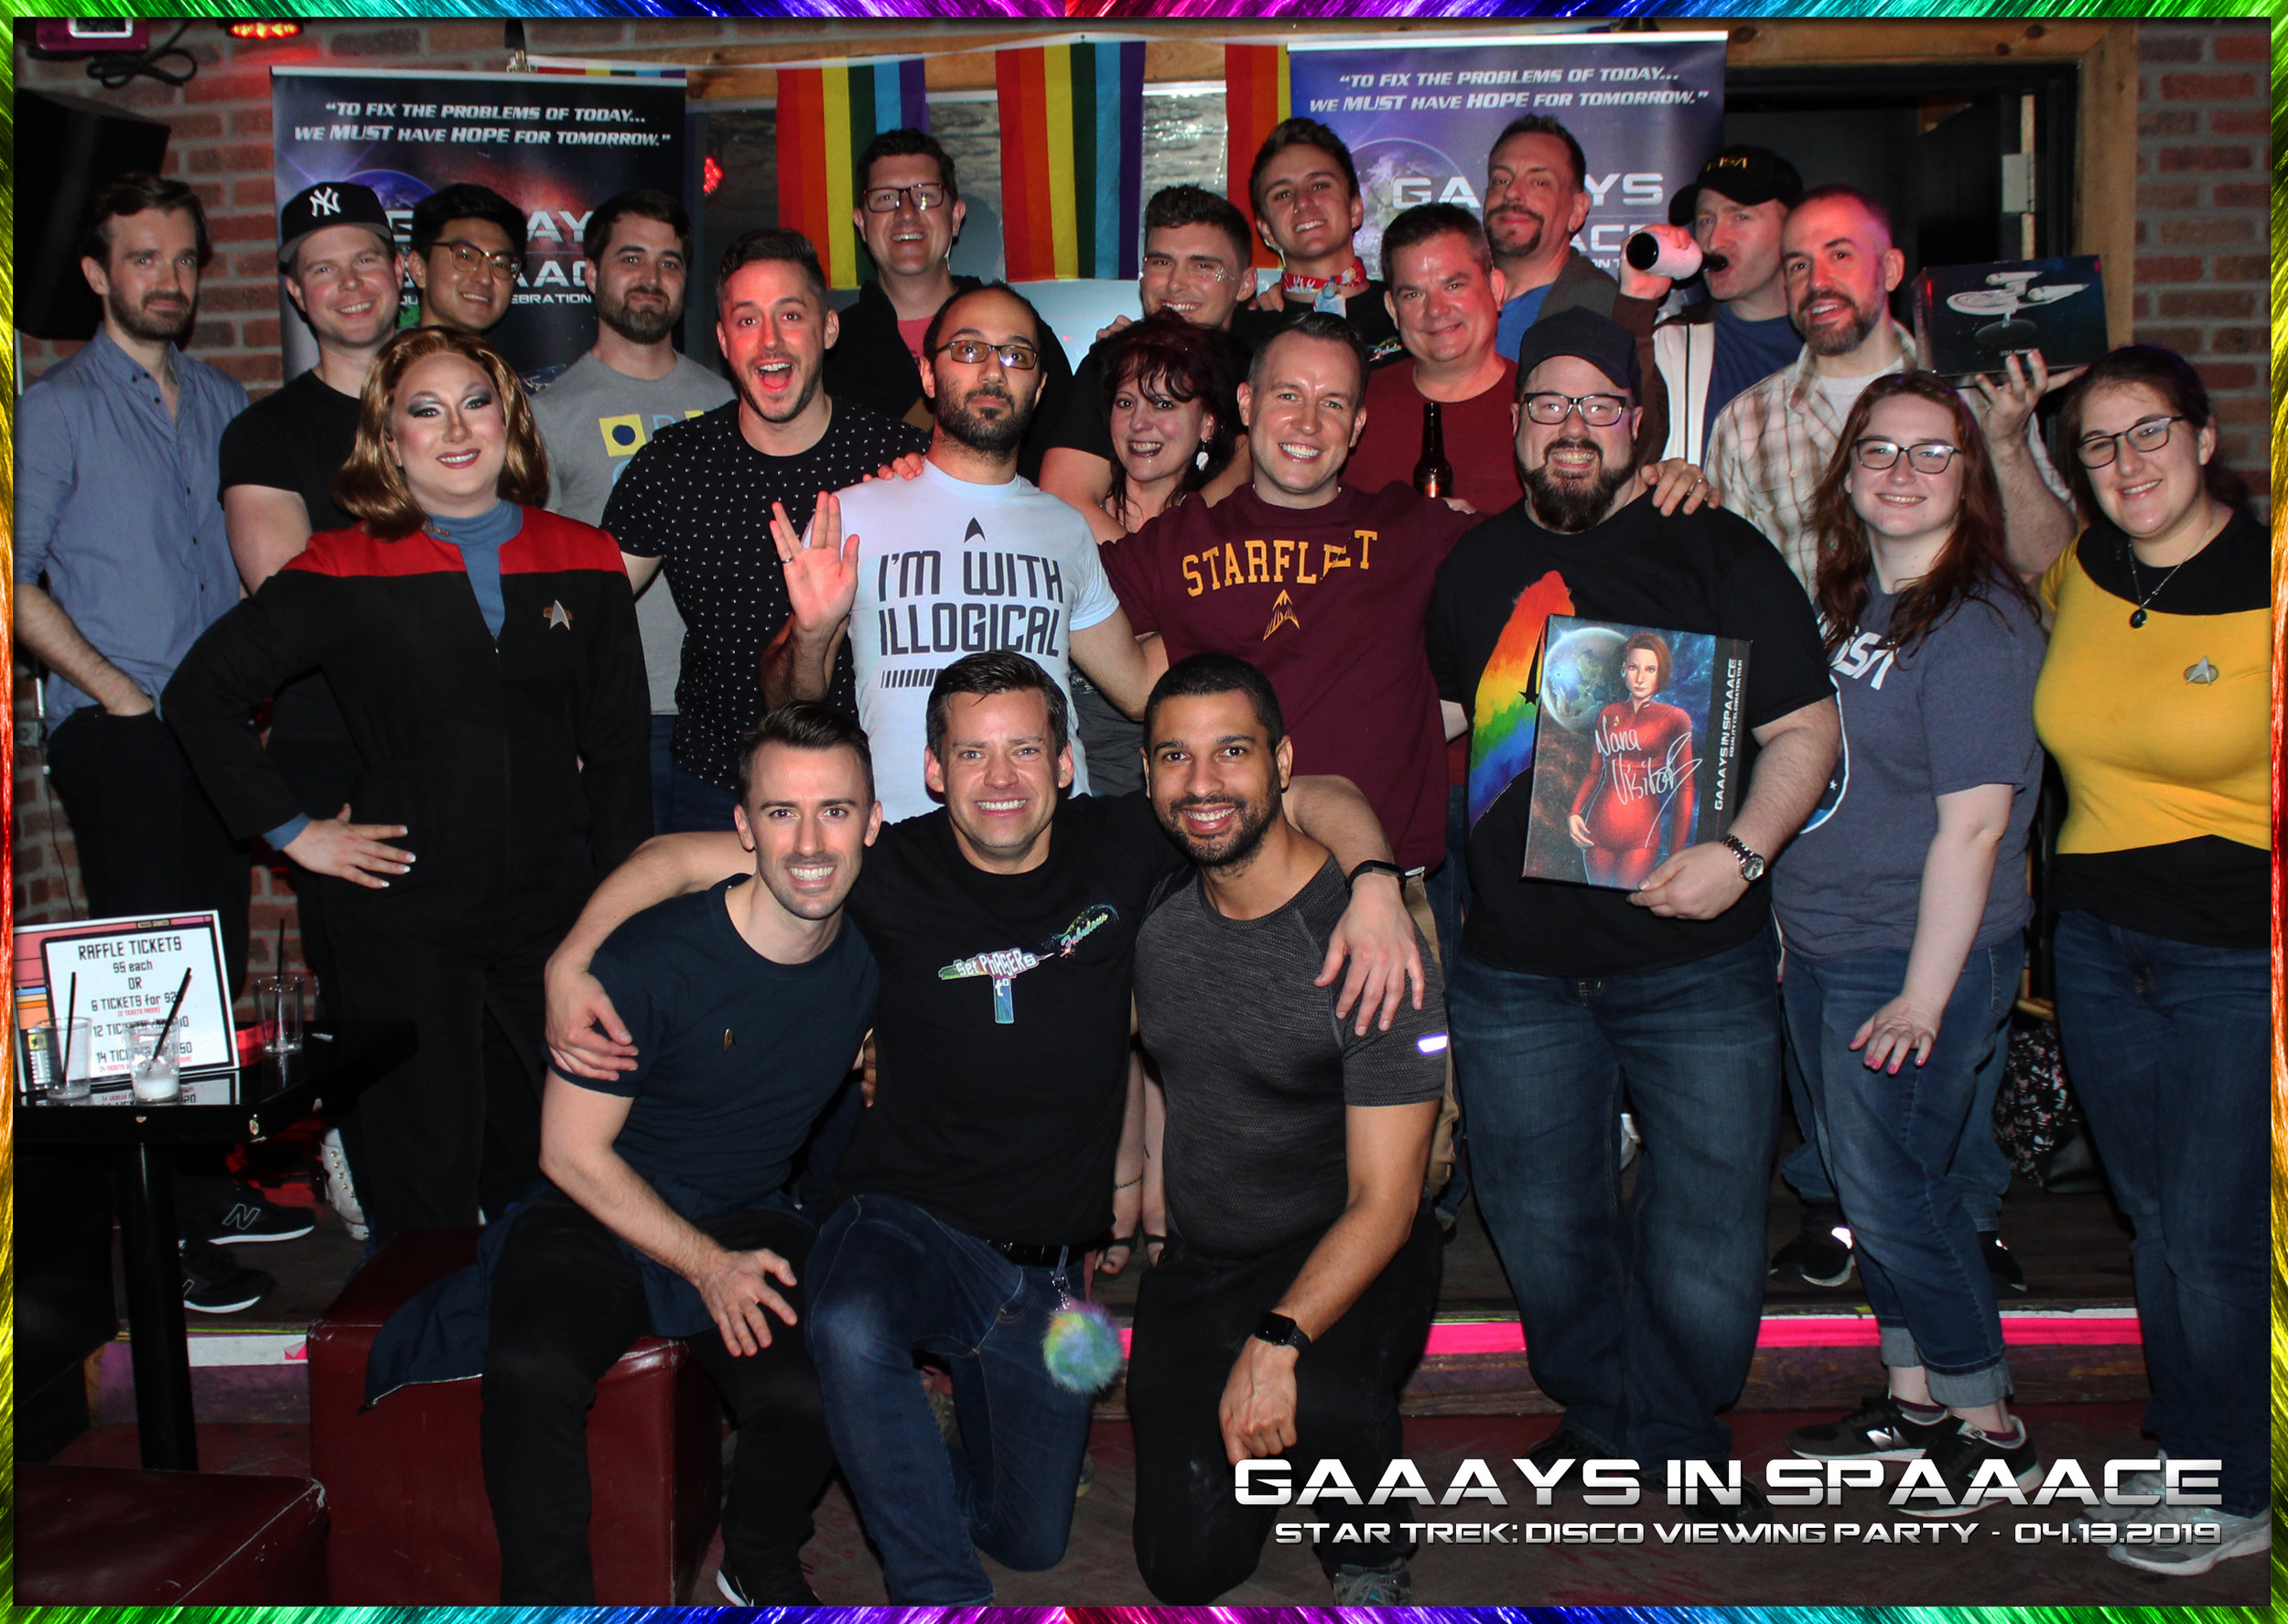 04-13-19-GIS-DISCO-VIEWING-PARTY-1.jpg